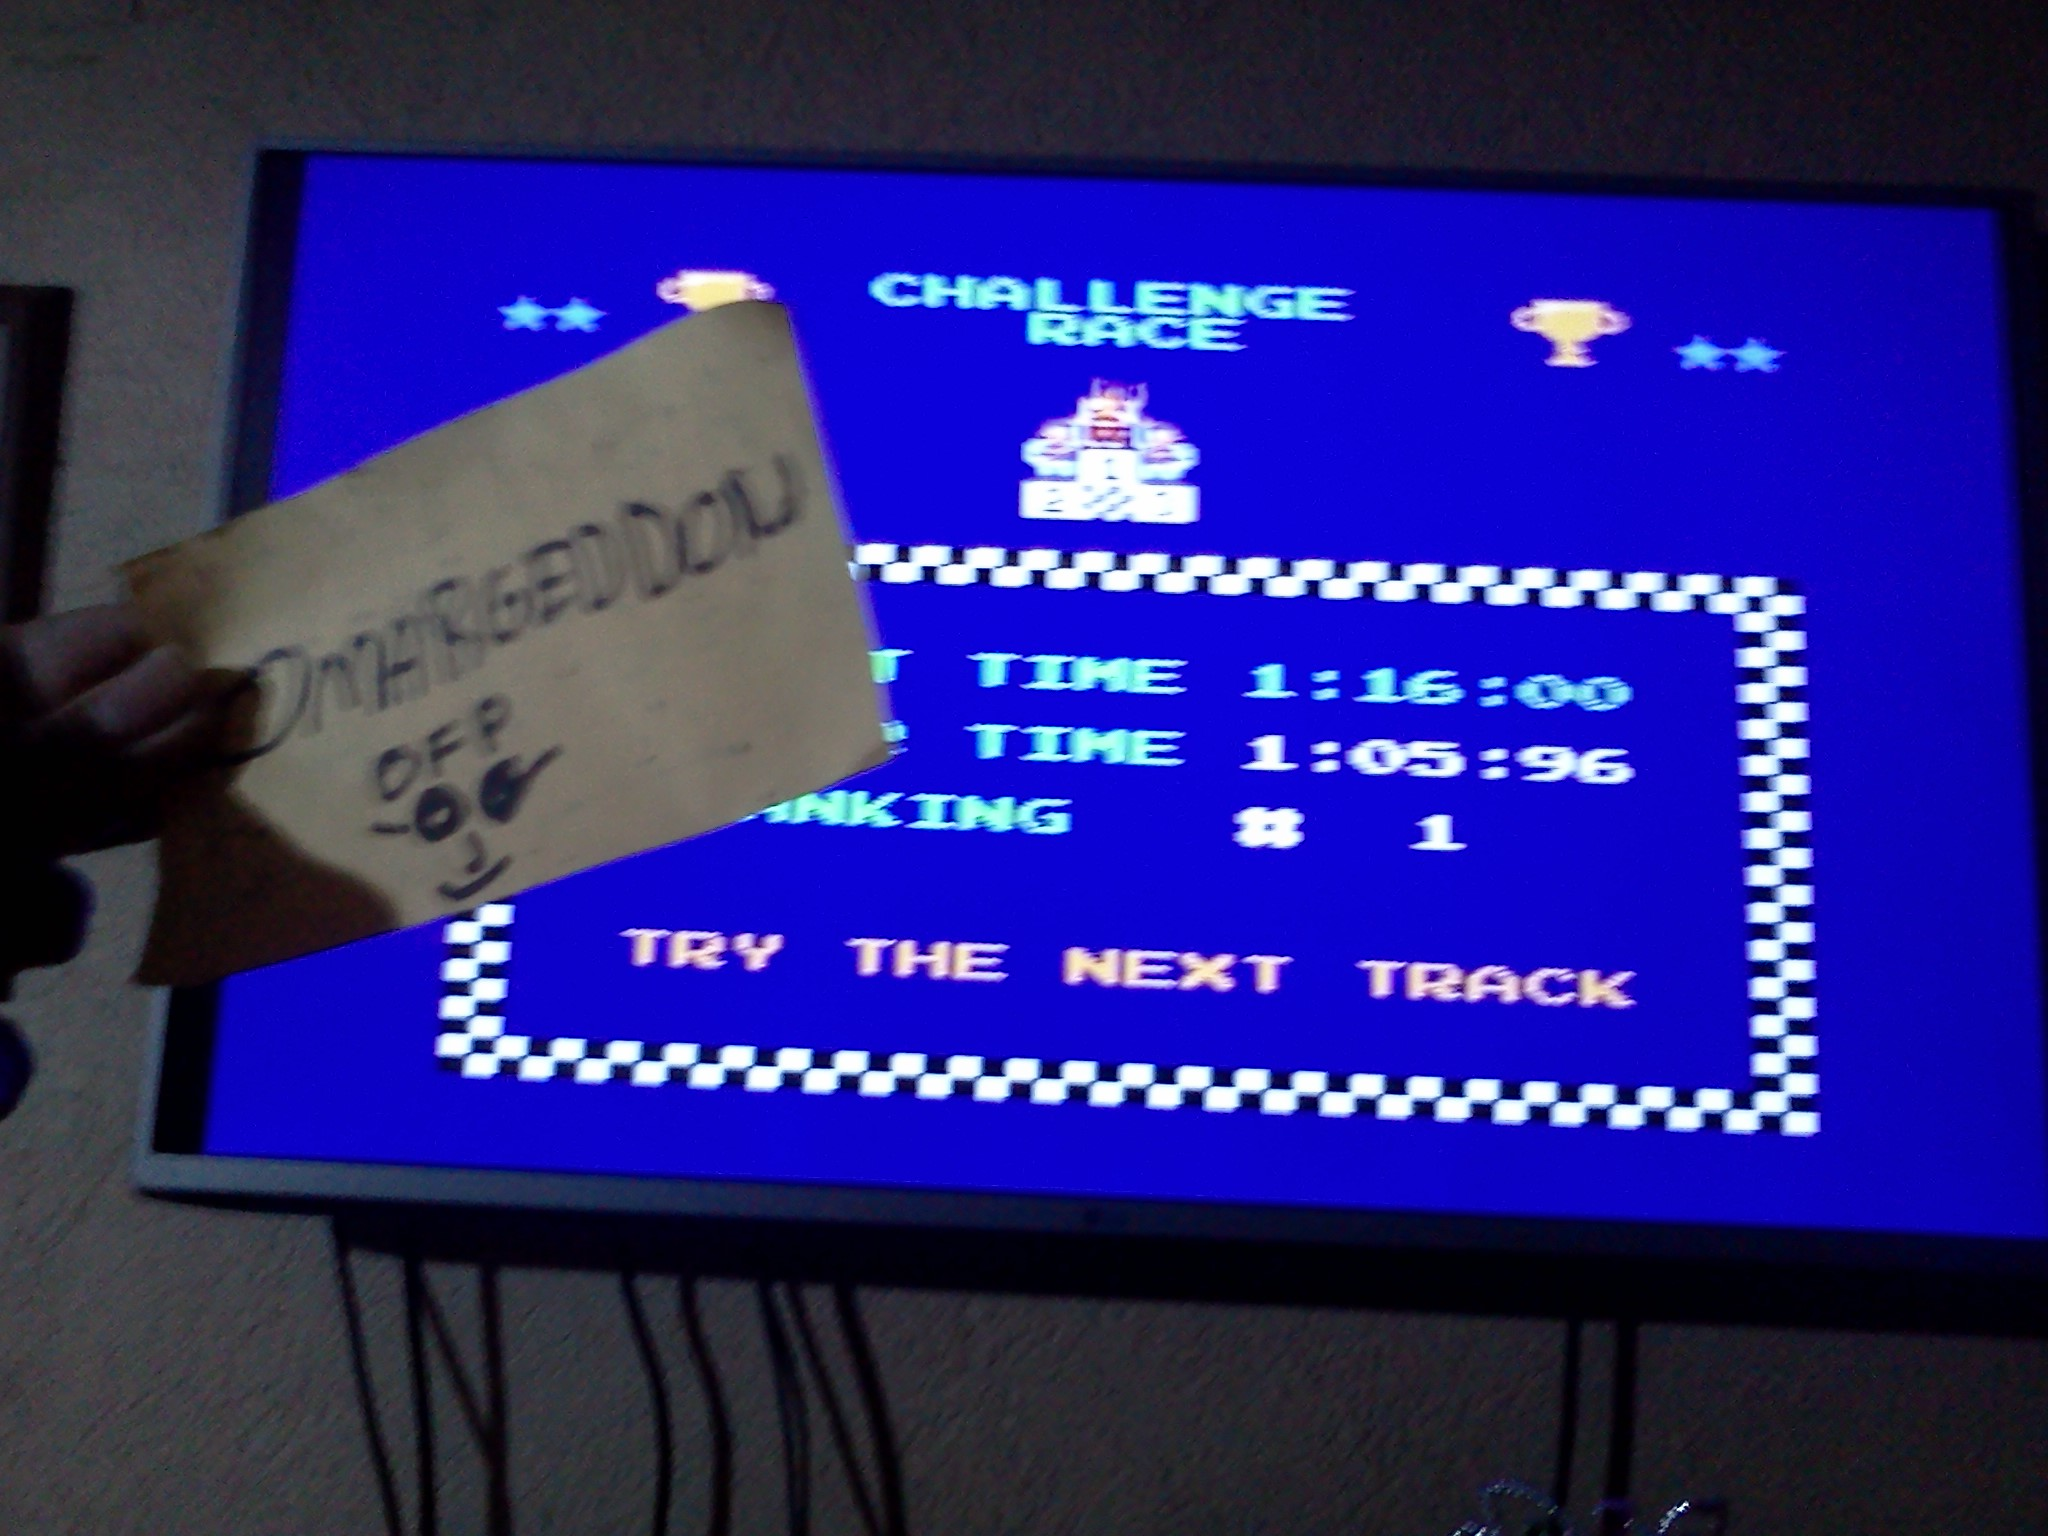 Excitebike: Track 3 time of 0:01:05.96